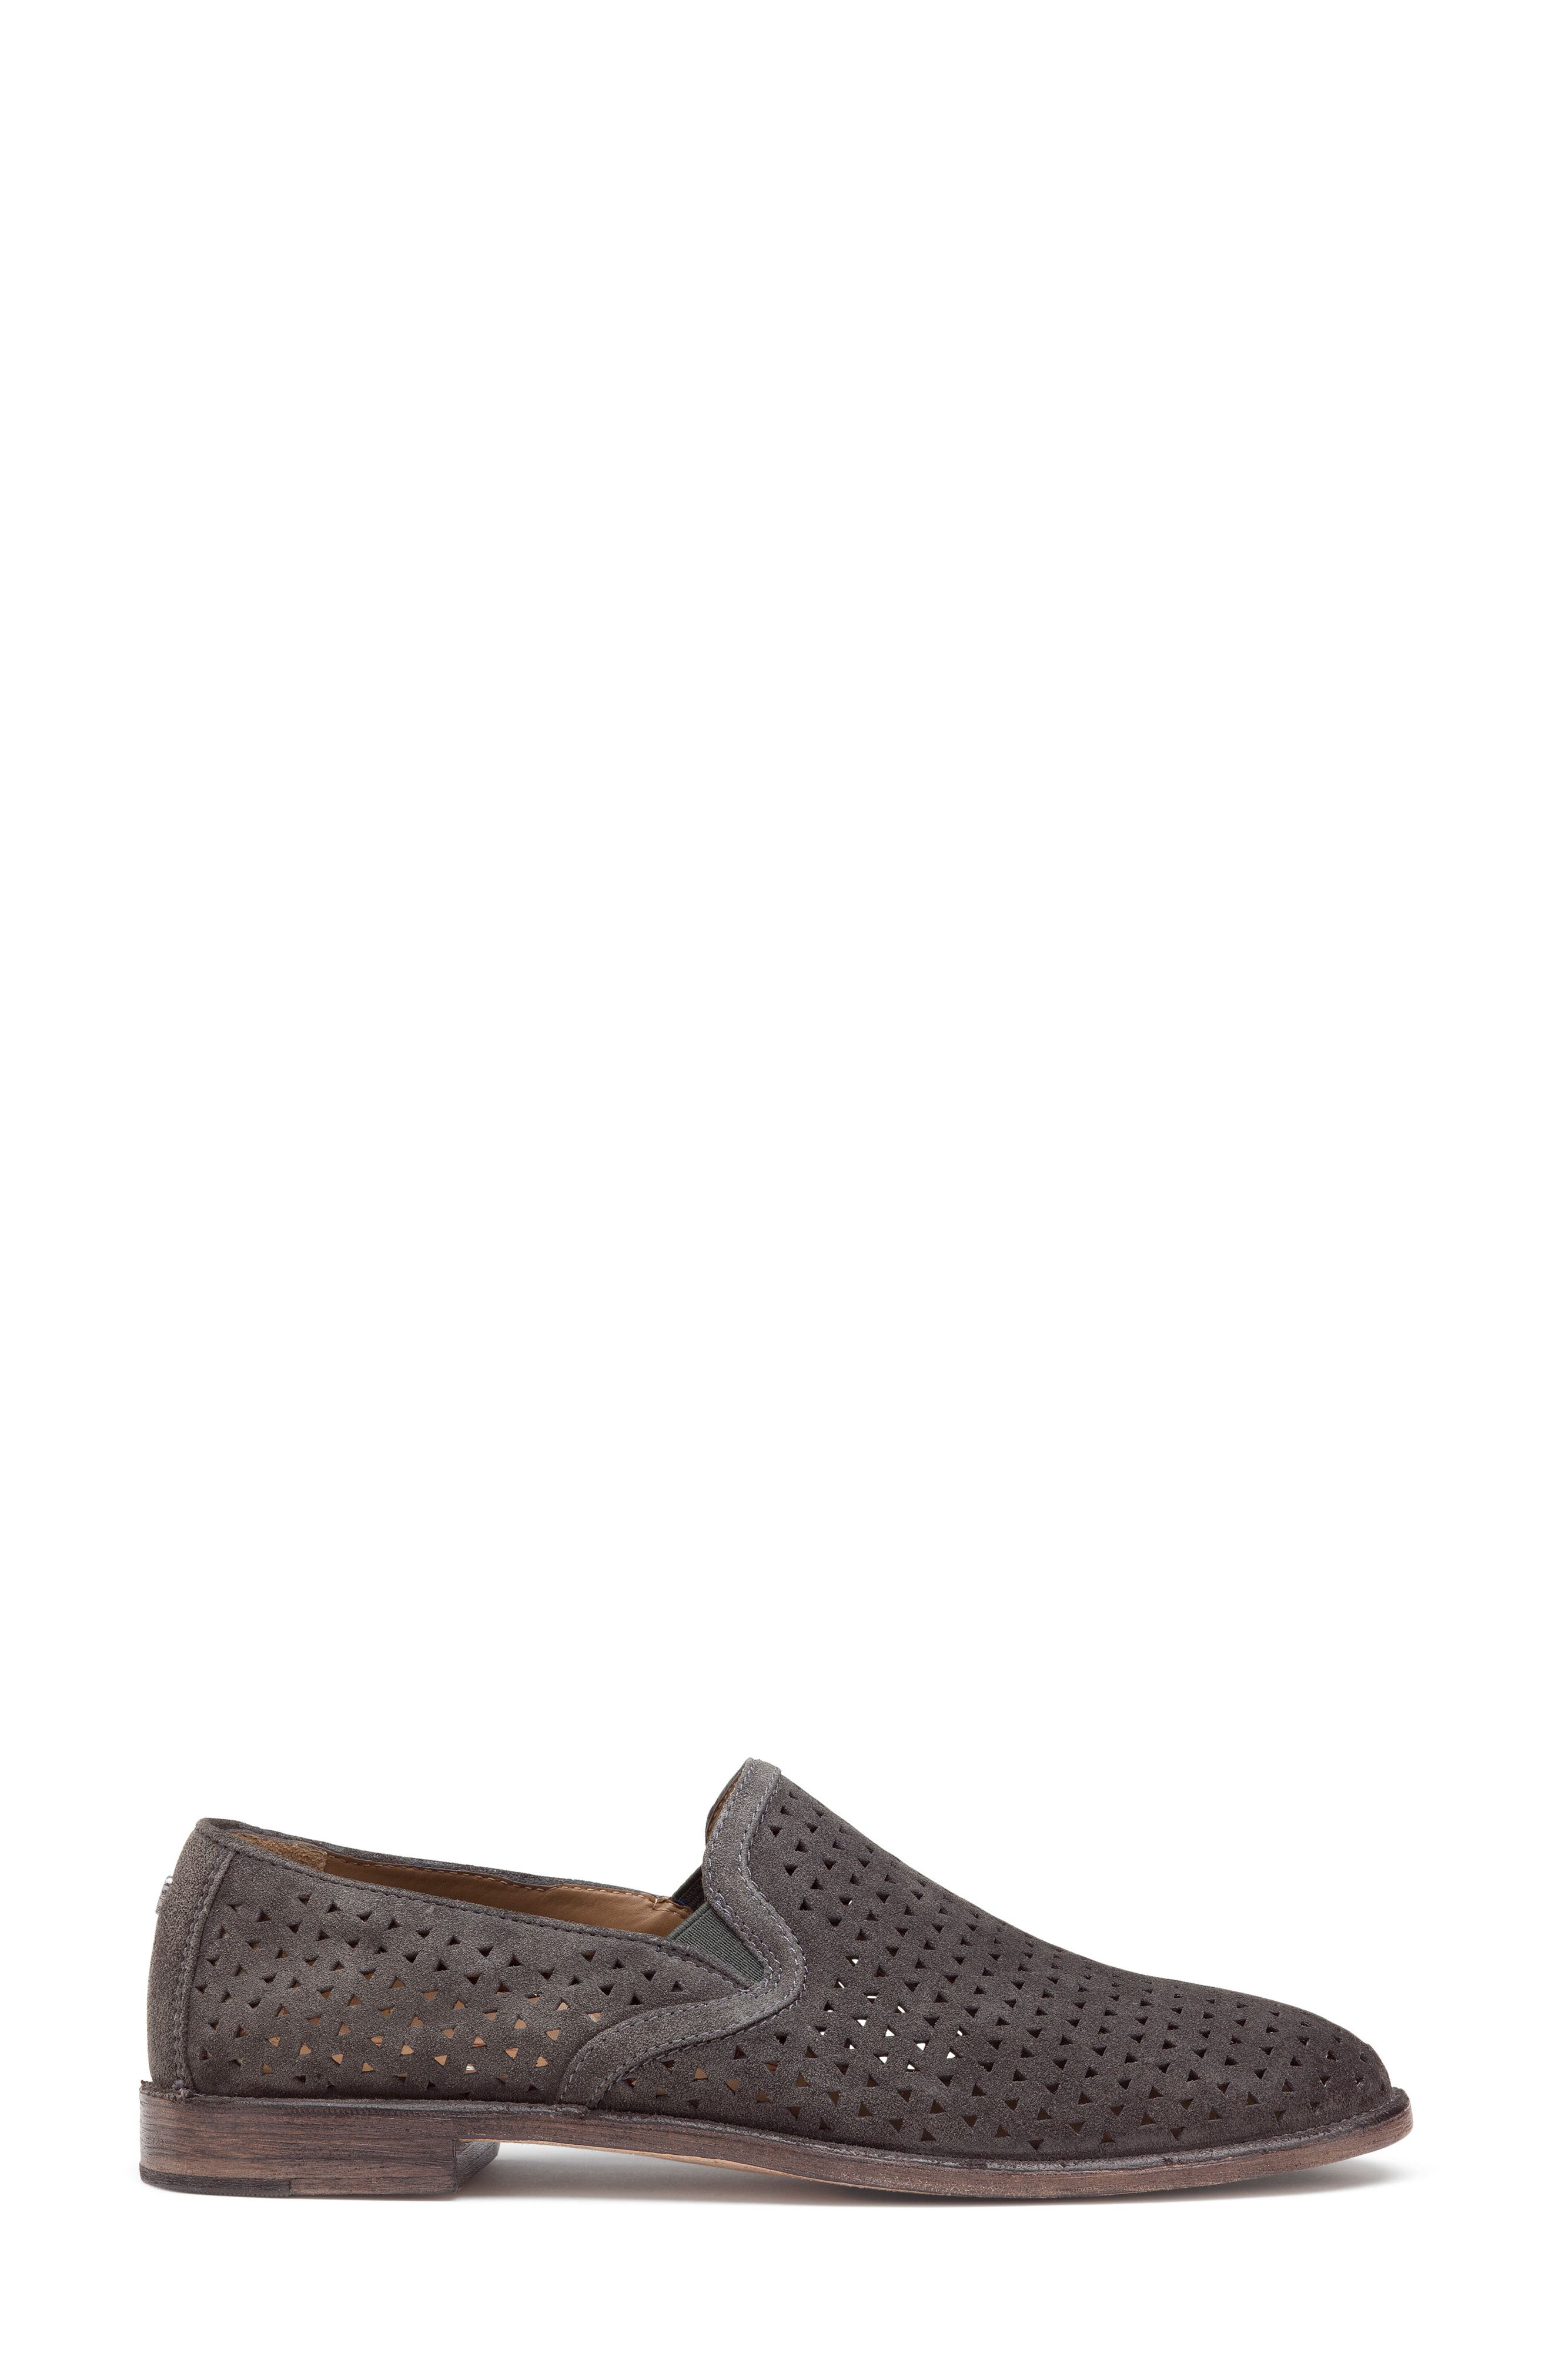 Ali Perforated Loafer,                             Alternate thumbnail 3, color,                             GREY SUEDE